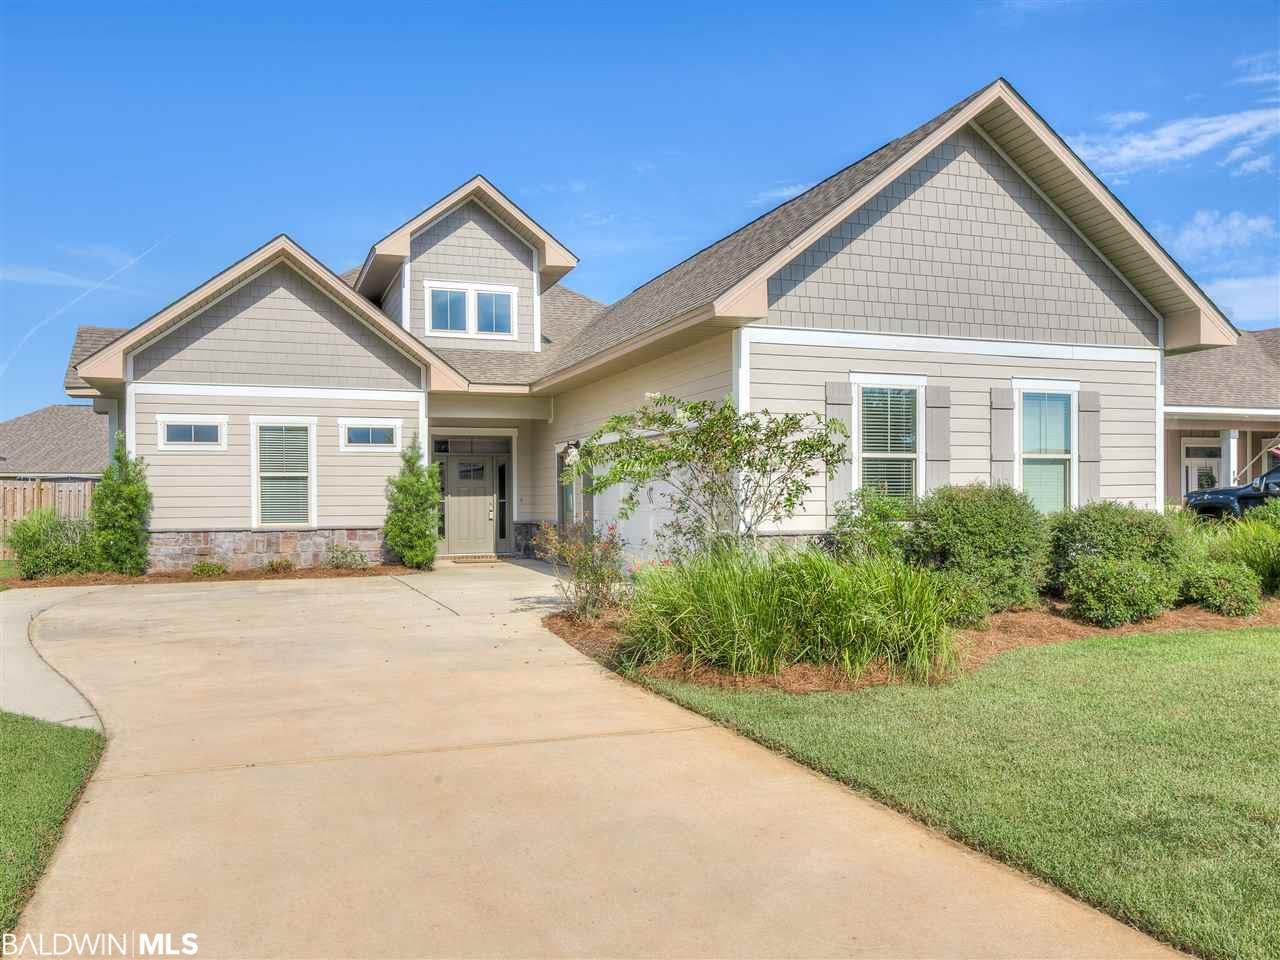 24556 Alex Court, Daphne, AL 36526